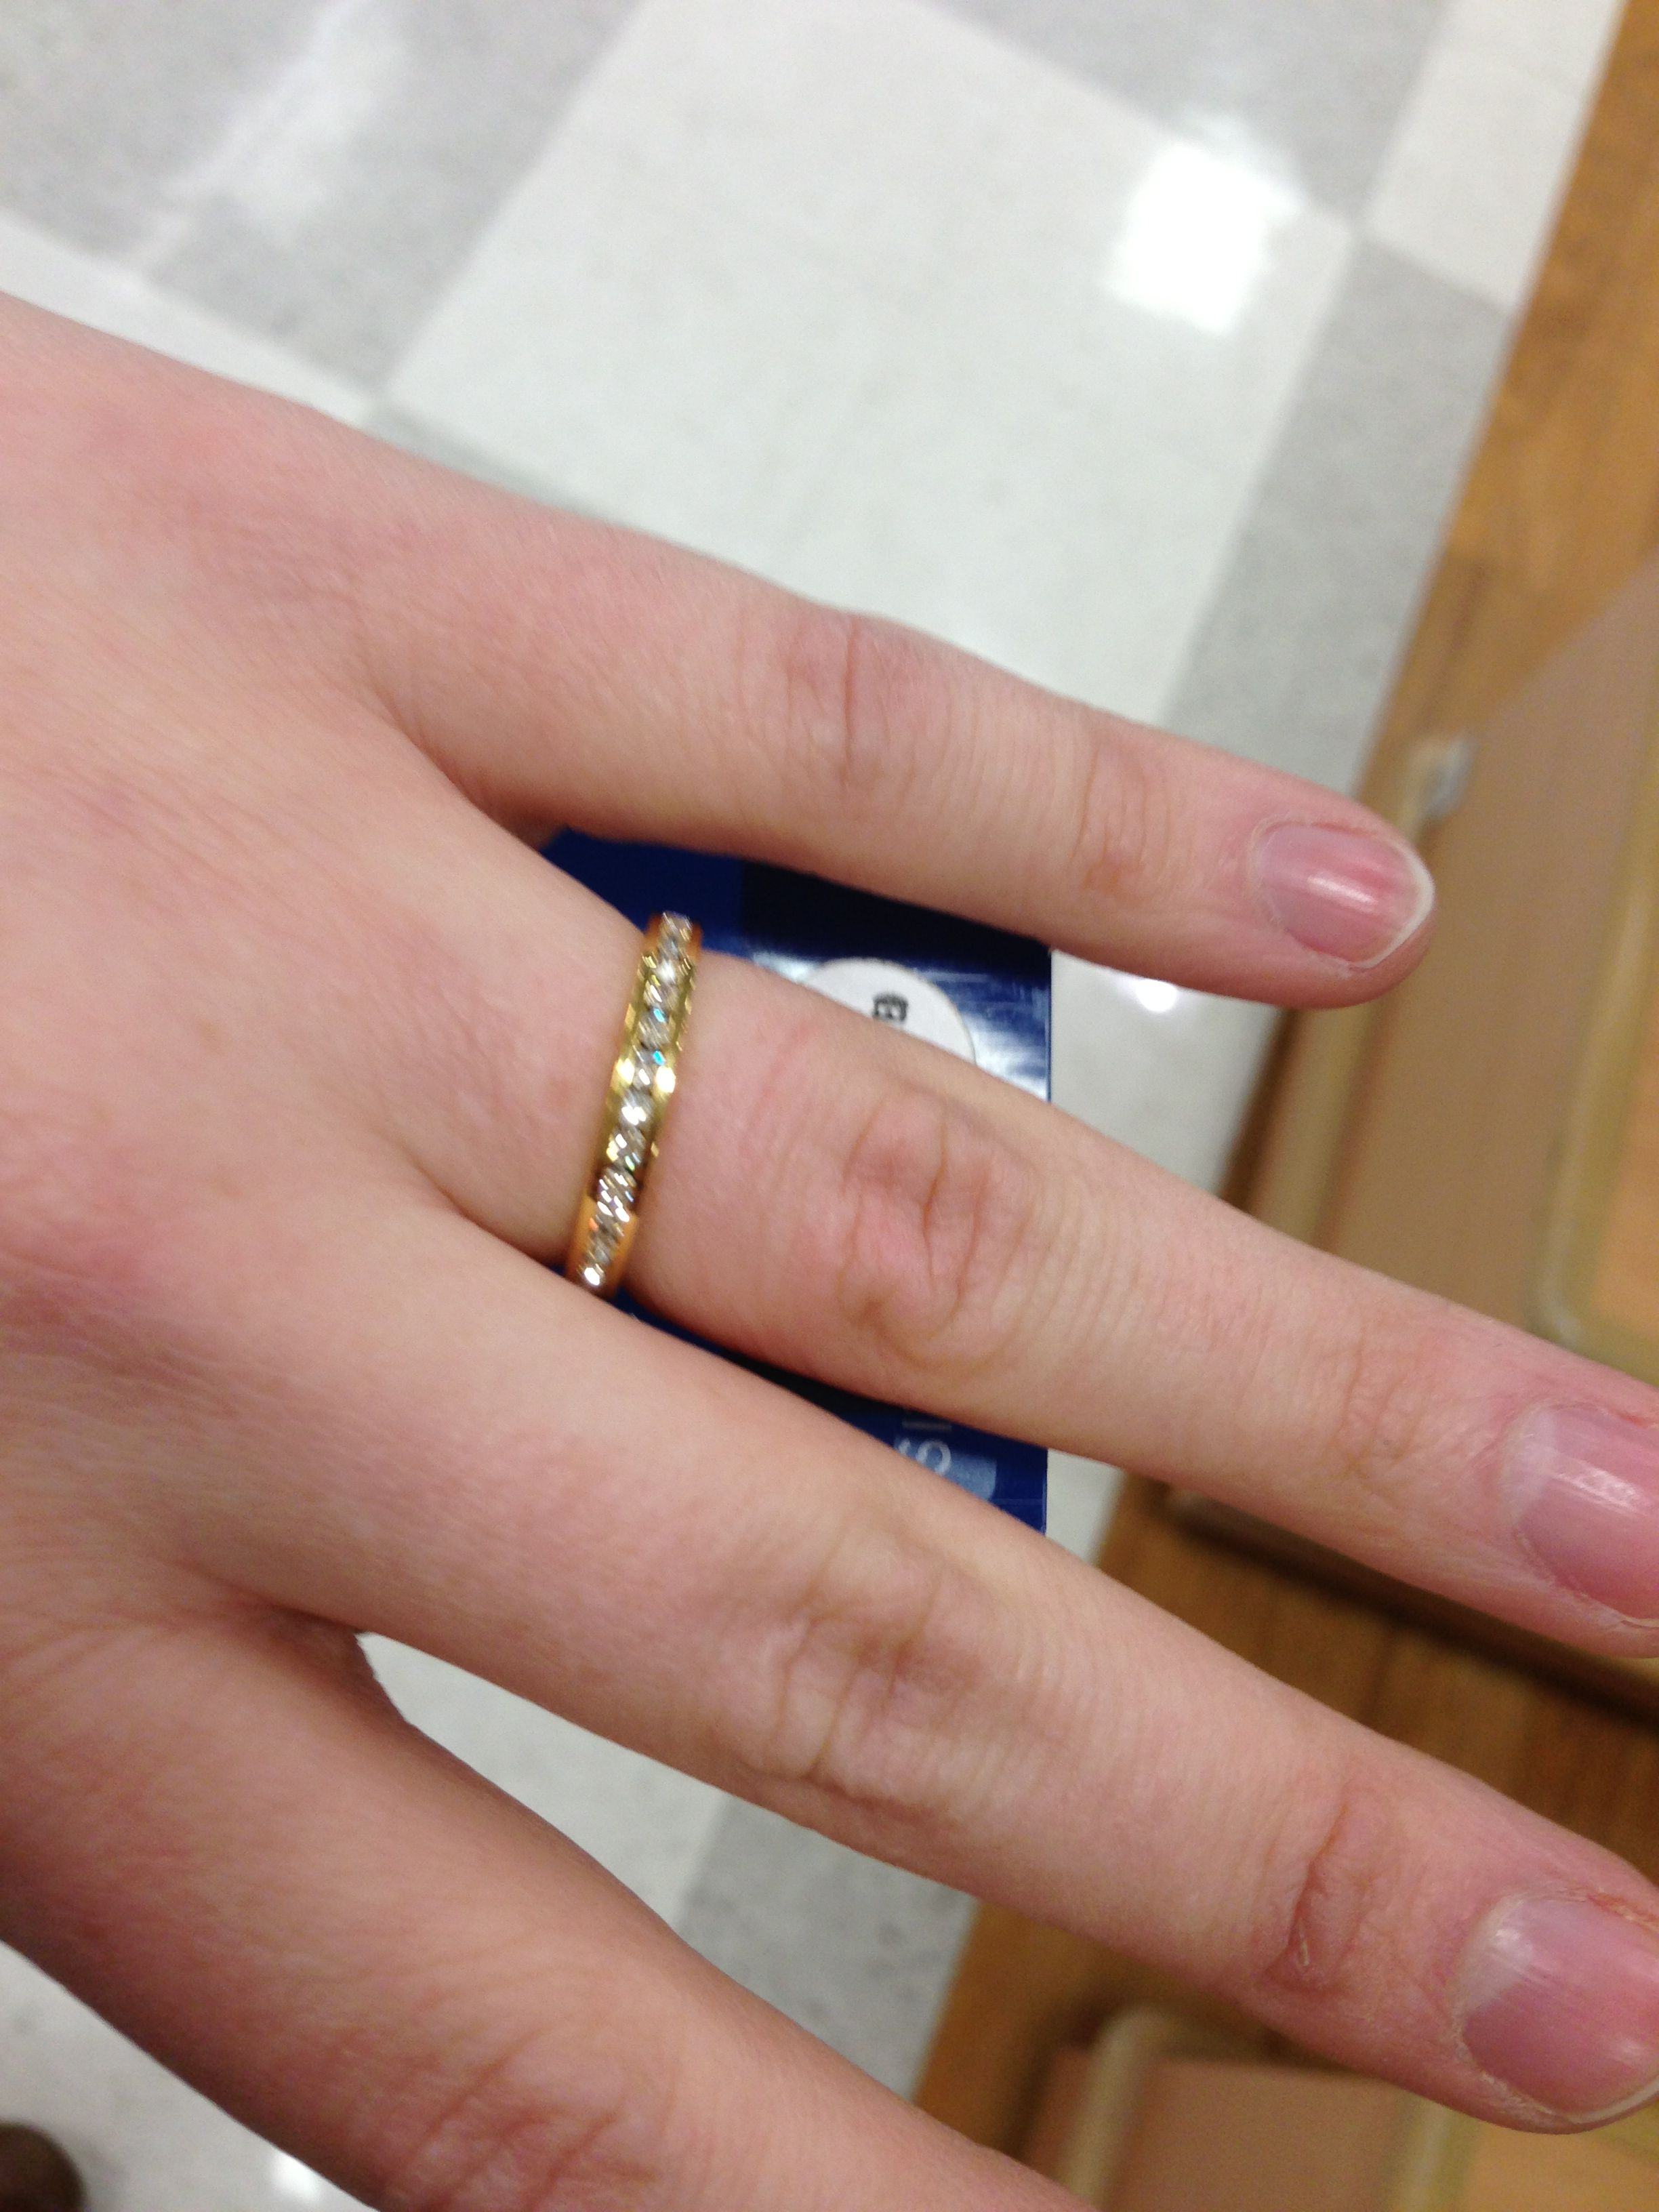 $9.99 Meijer ring... I think it looks pretty enough to ware forever ...